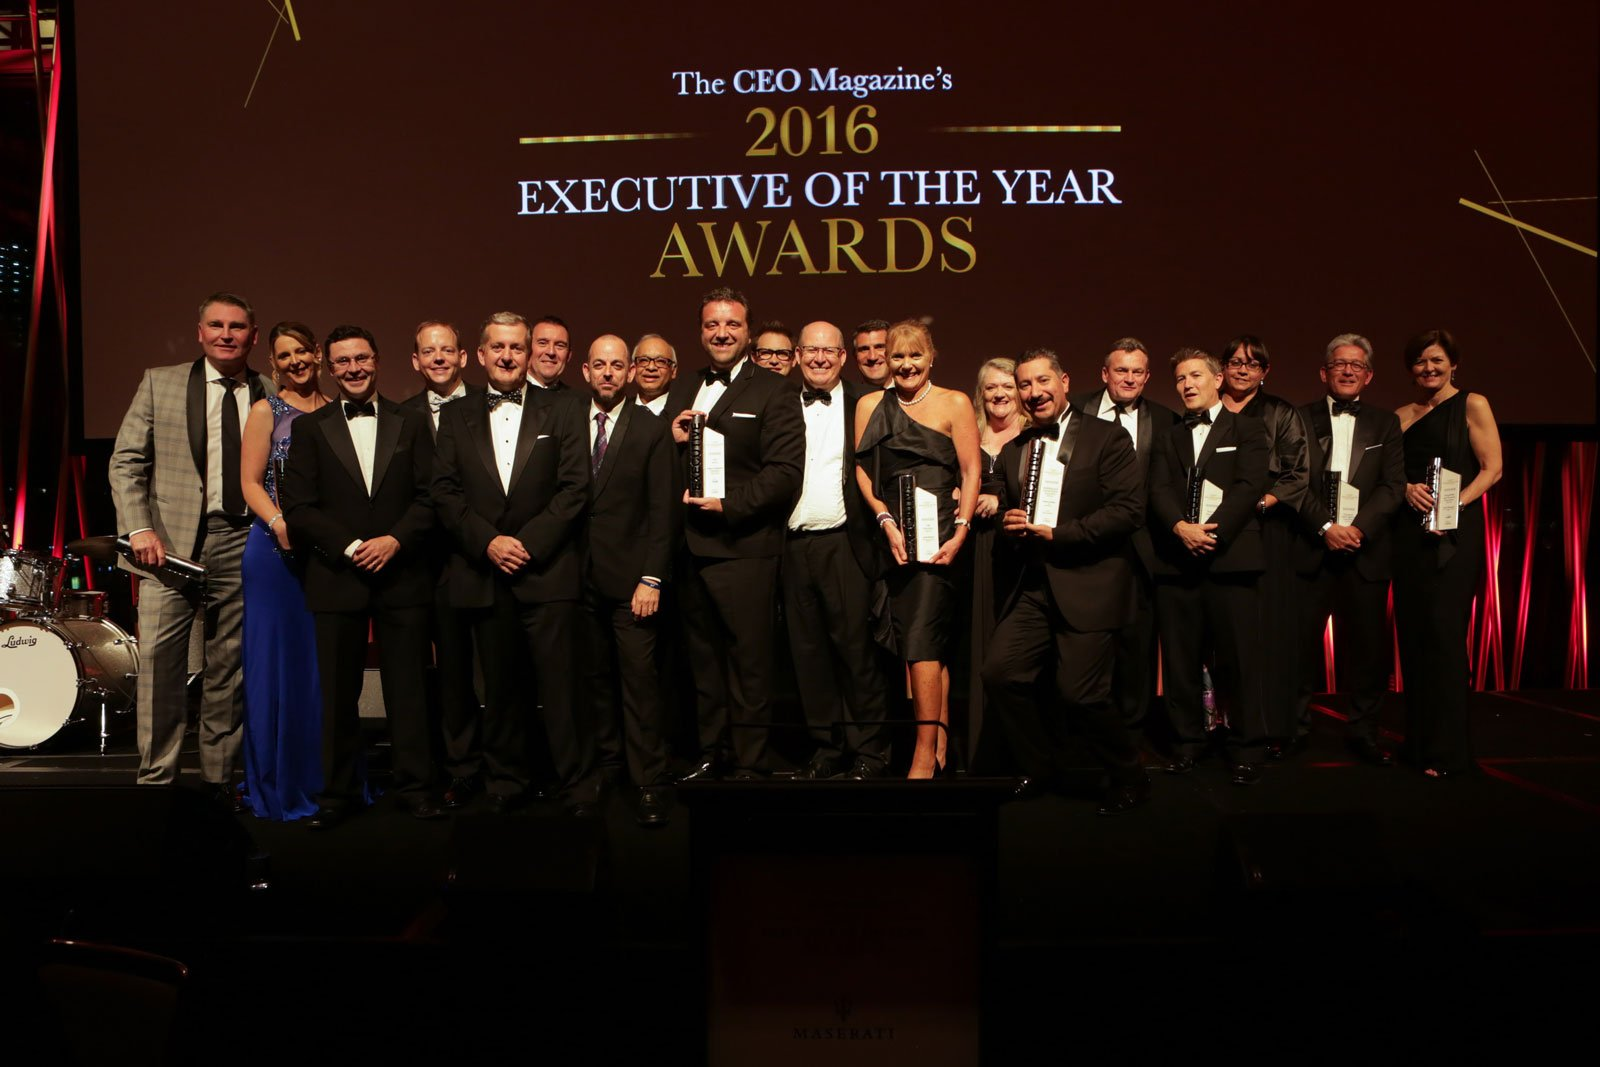 Executive of the Year Awards - image